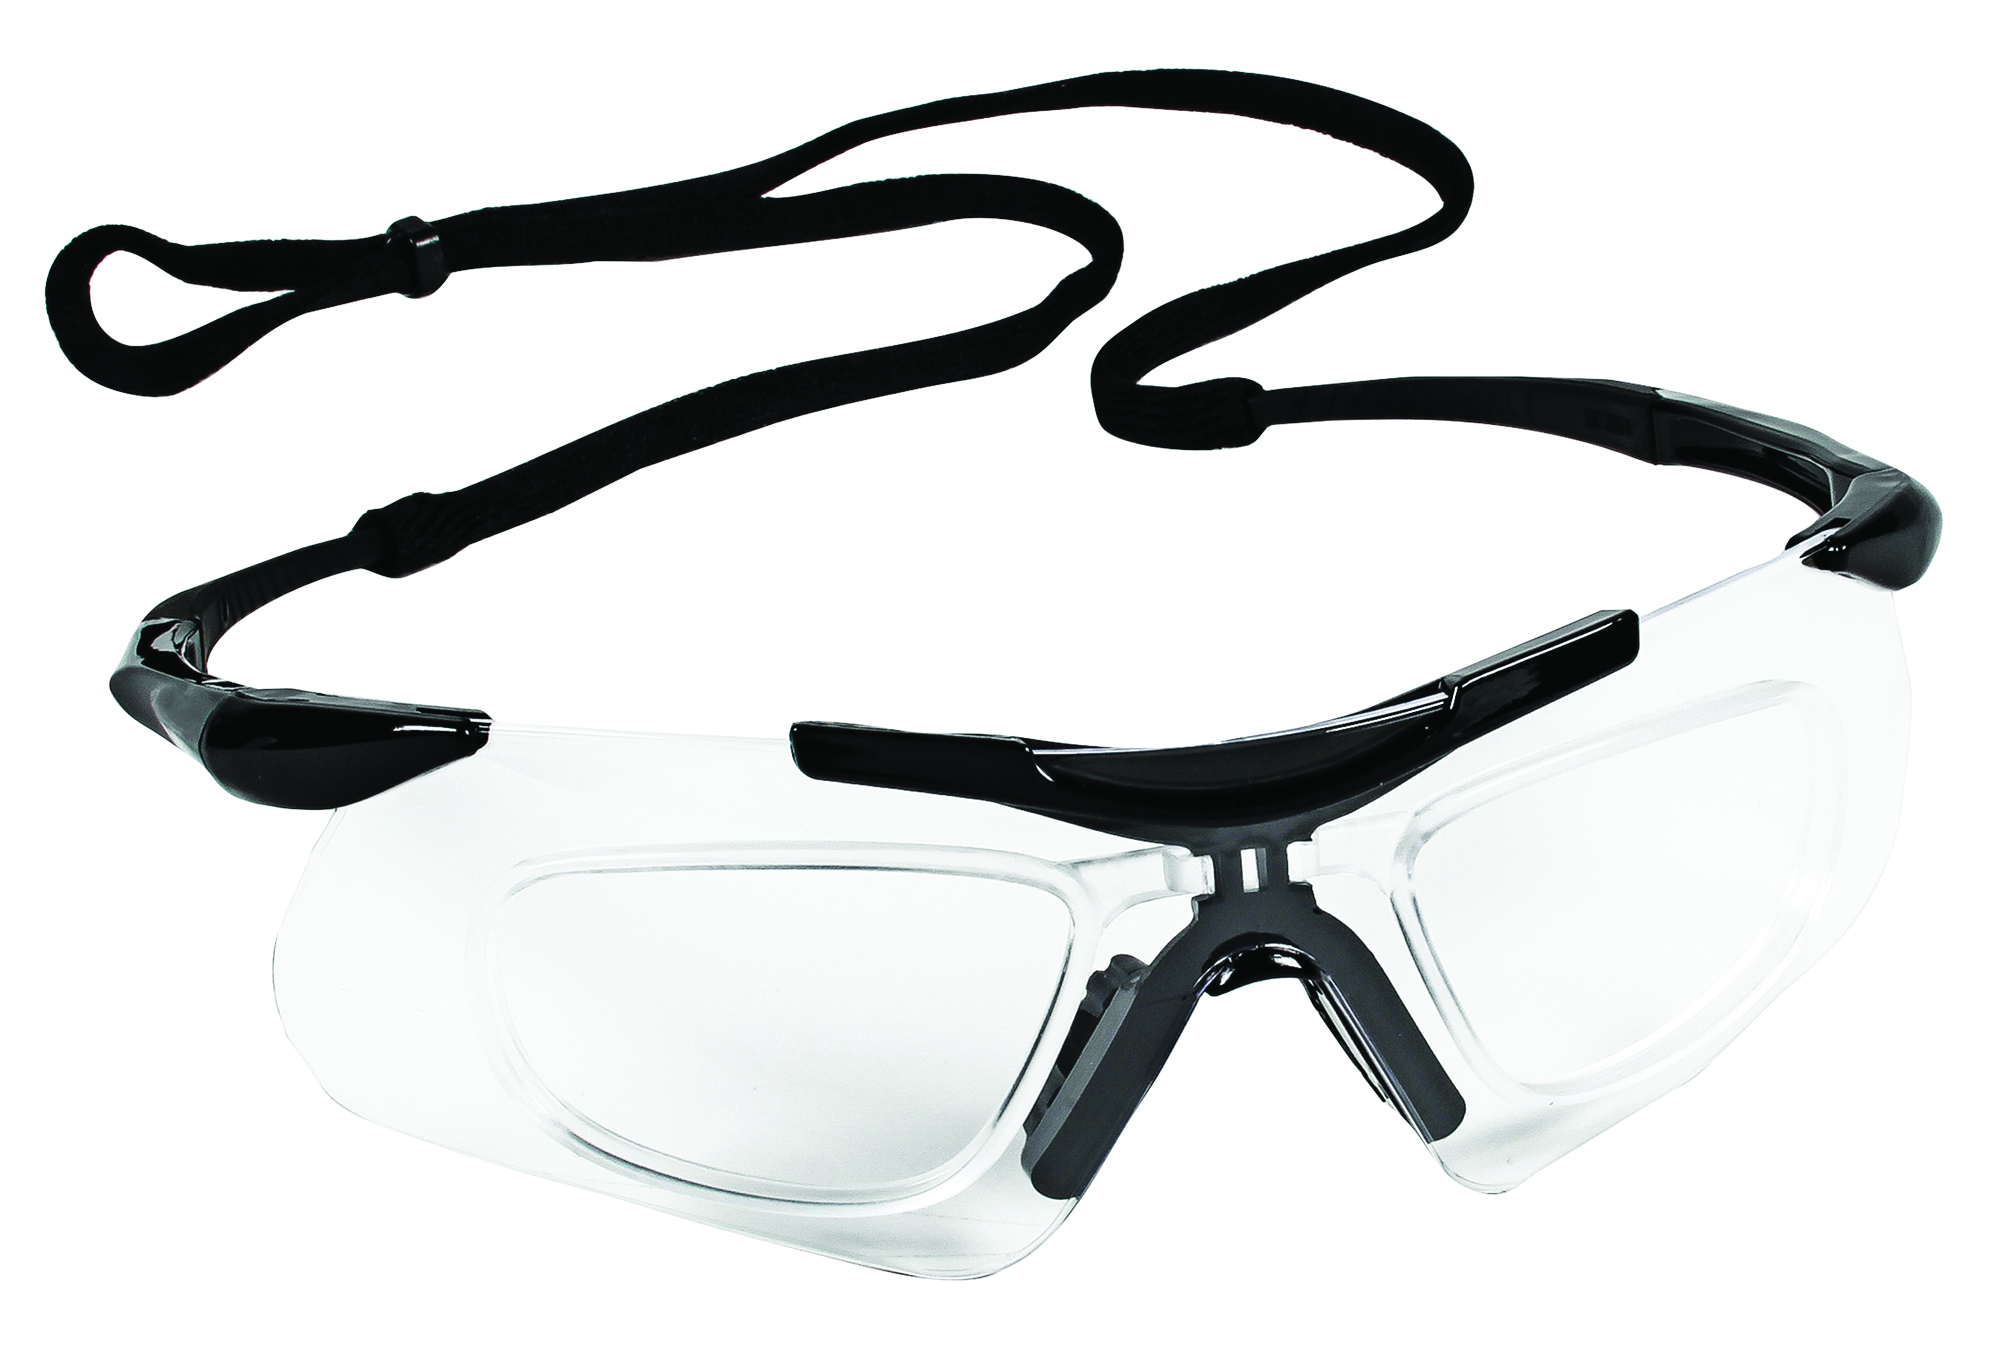 38503 - KleenGuard™ Nemesis* with RX Inserts Safety Glasses-KleenGuard™ Nemesis* with RX Inserts Safety Glasses, Clear Lens, Black Frame with RX Inserts-----UOM: 1/EA